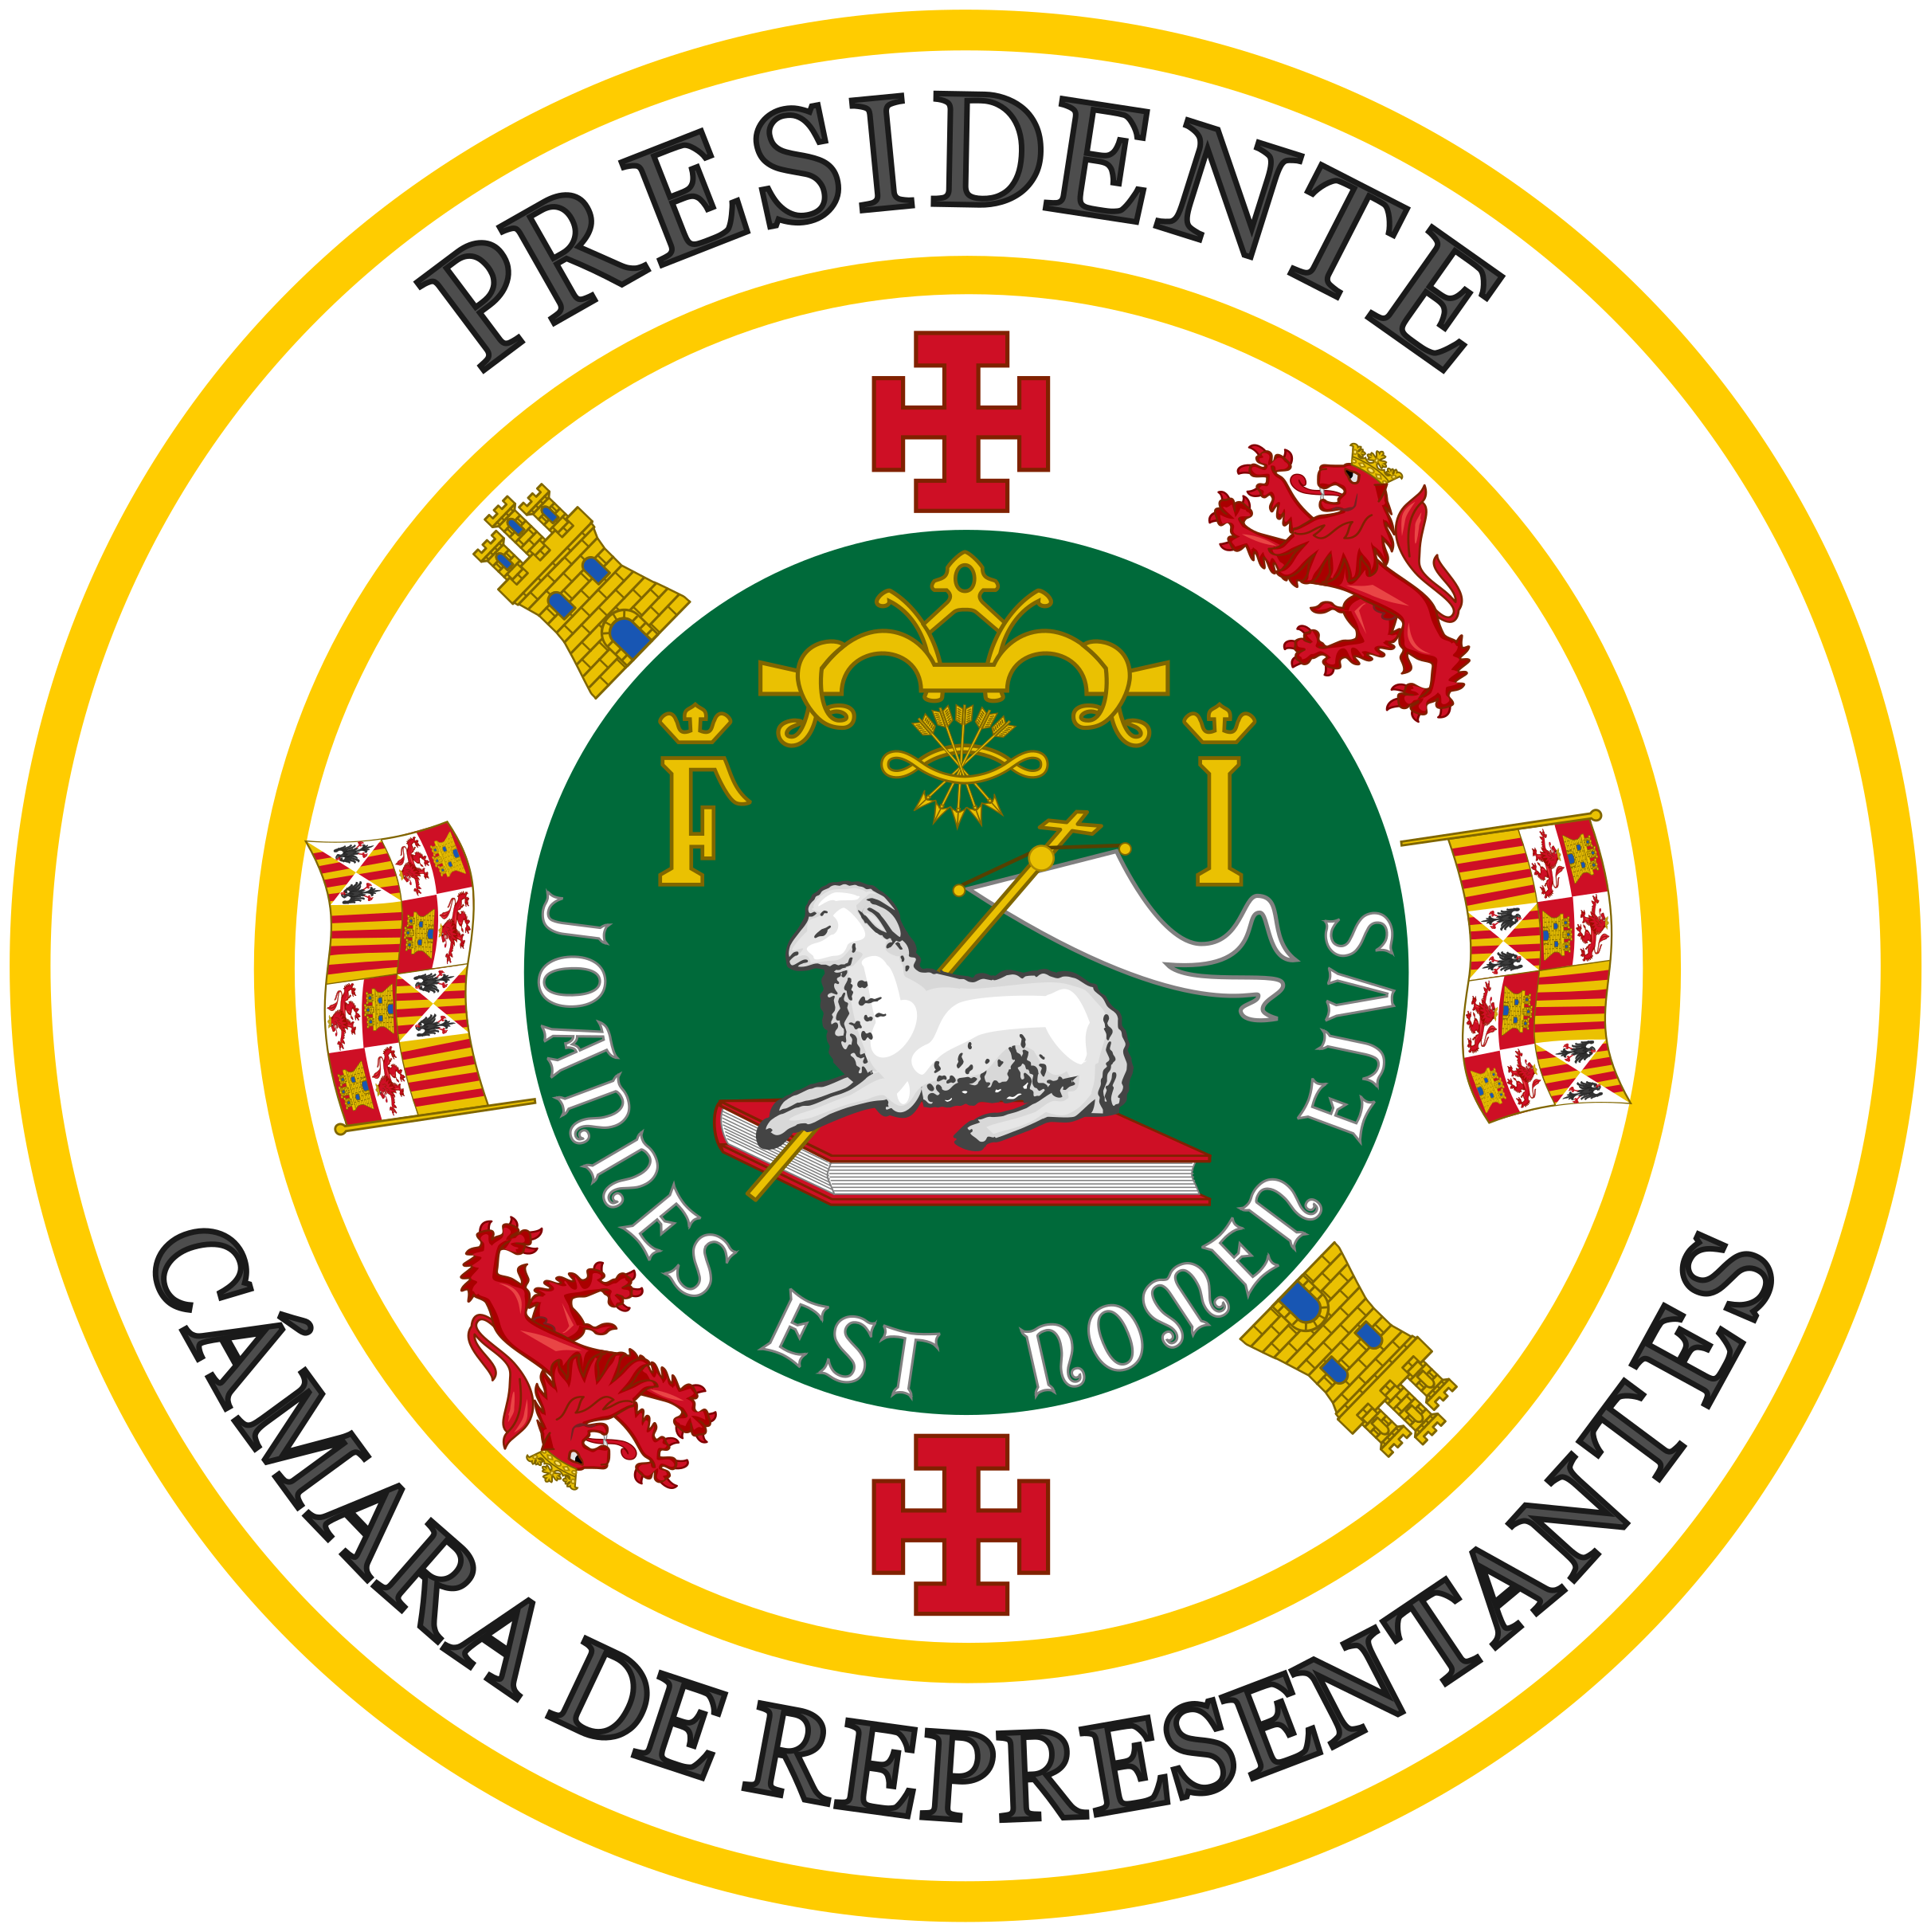 Puerto rico seal png. File of the president